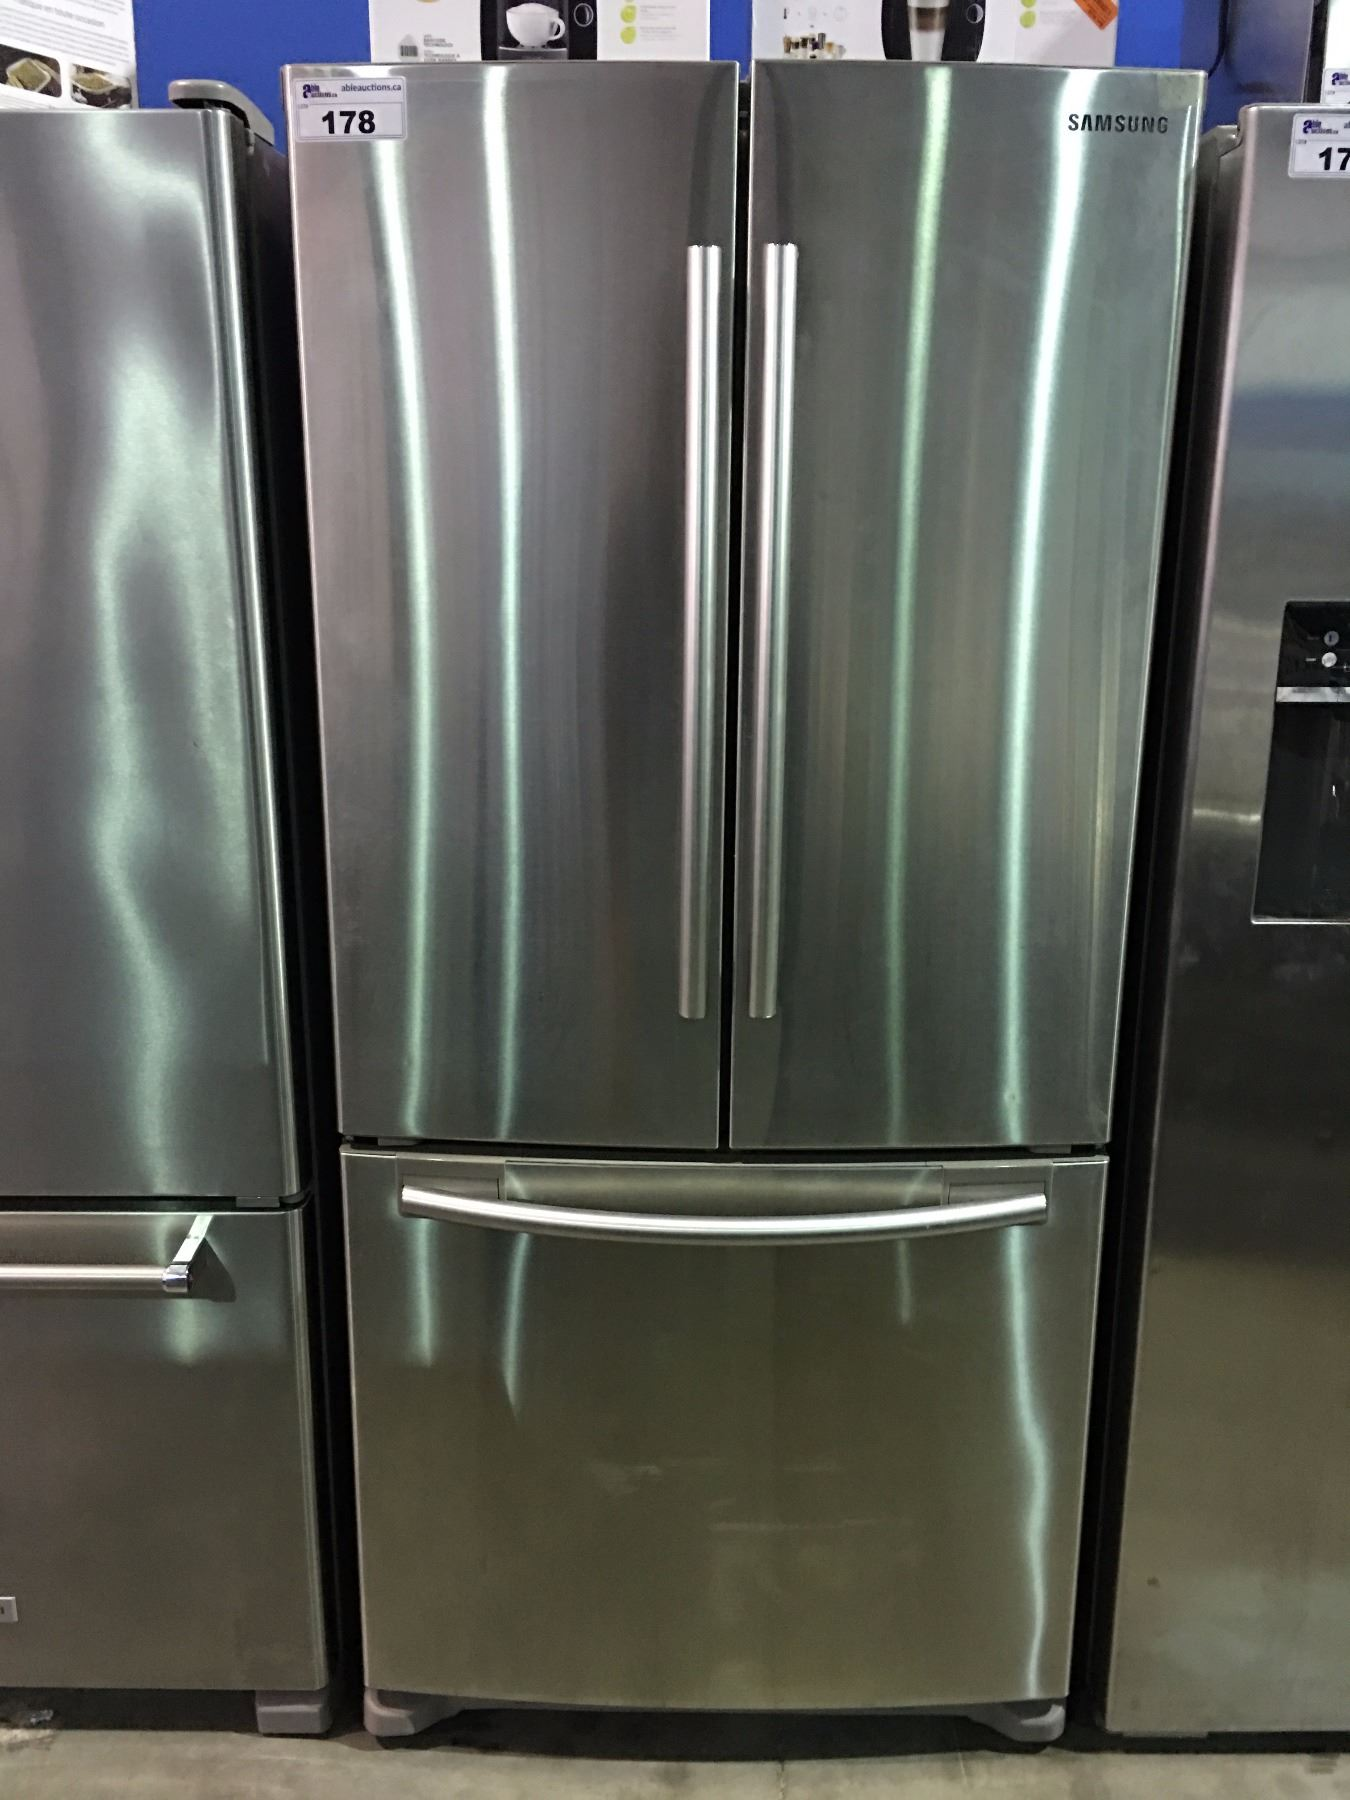 Samsung Stainless Steel 3 Door Refrigerator Minor Scratch